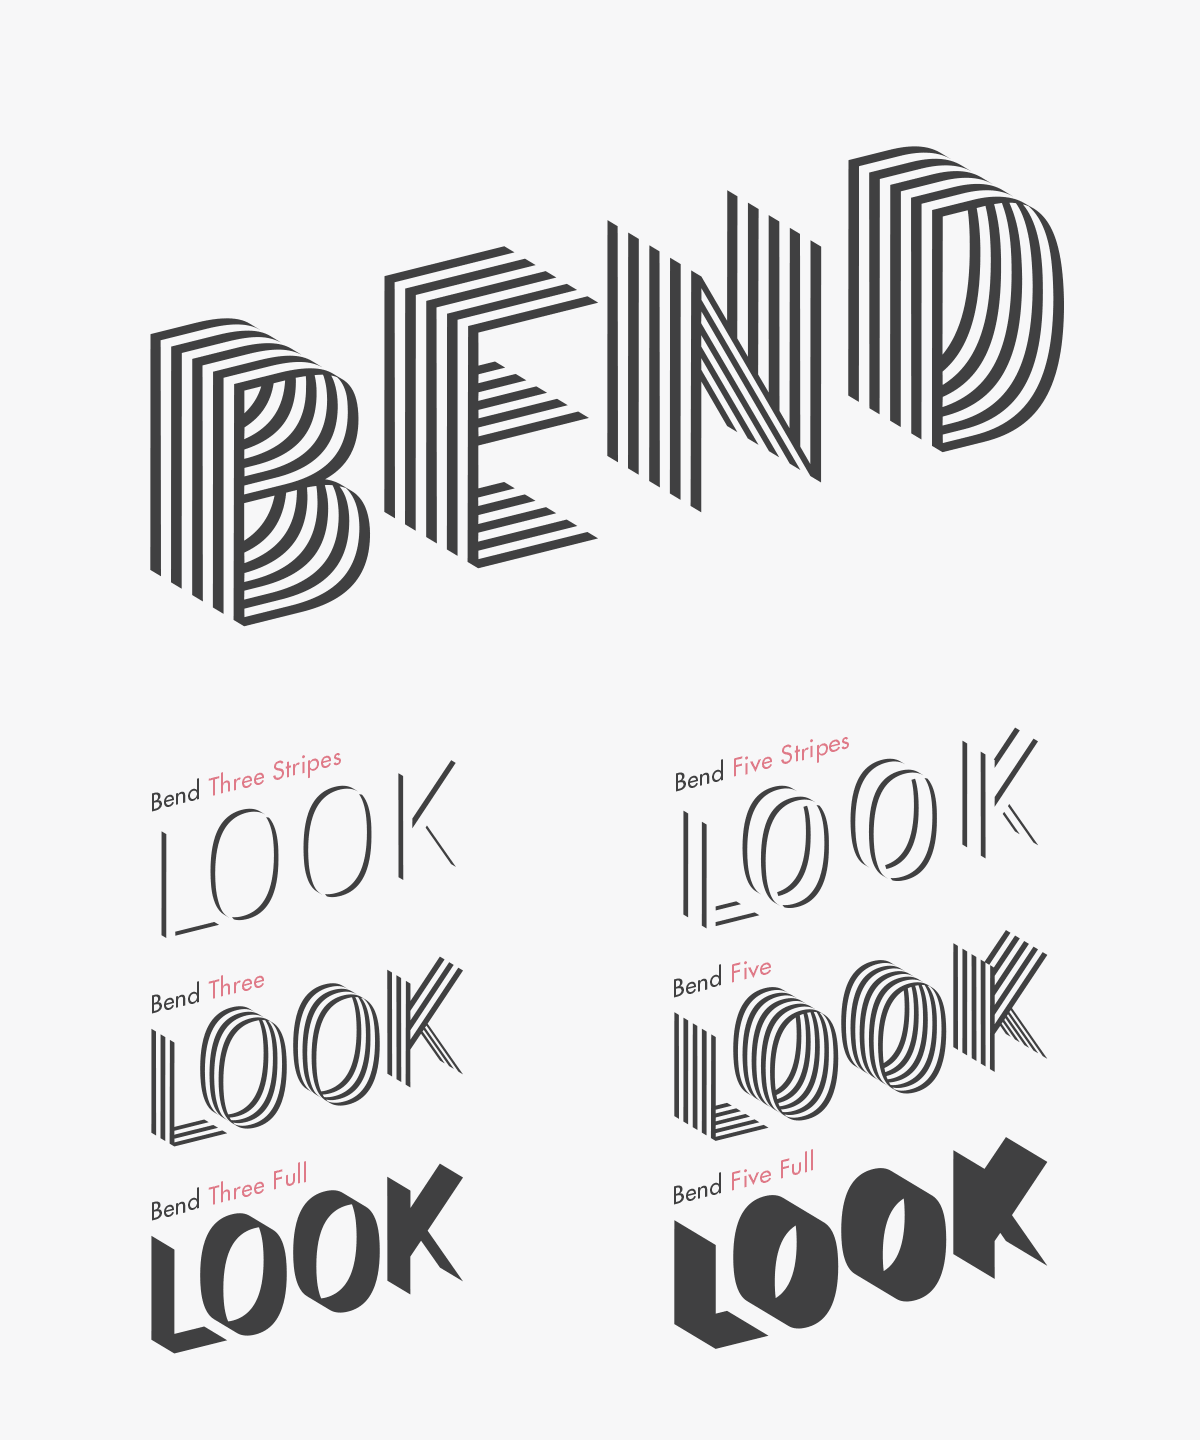 Bend Ribbon Typefaces In 6 Styles